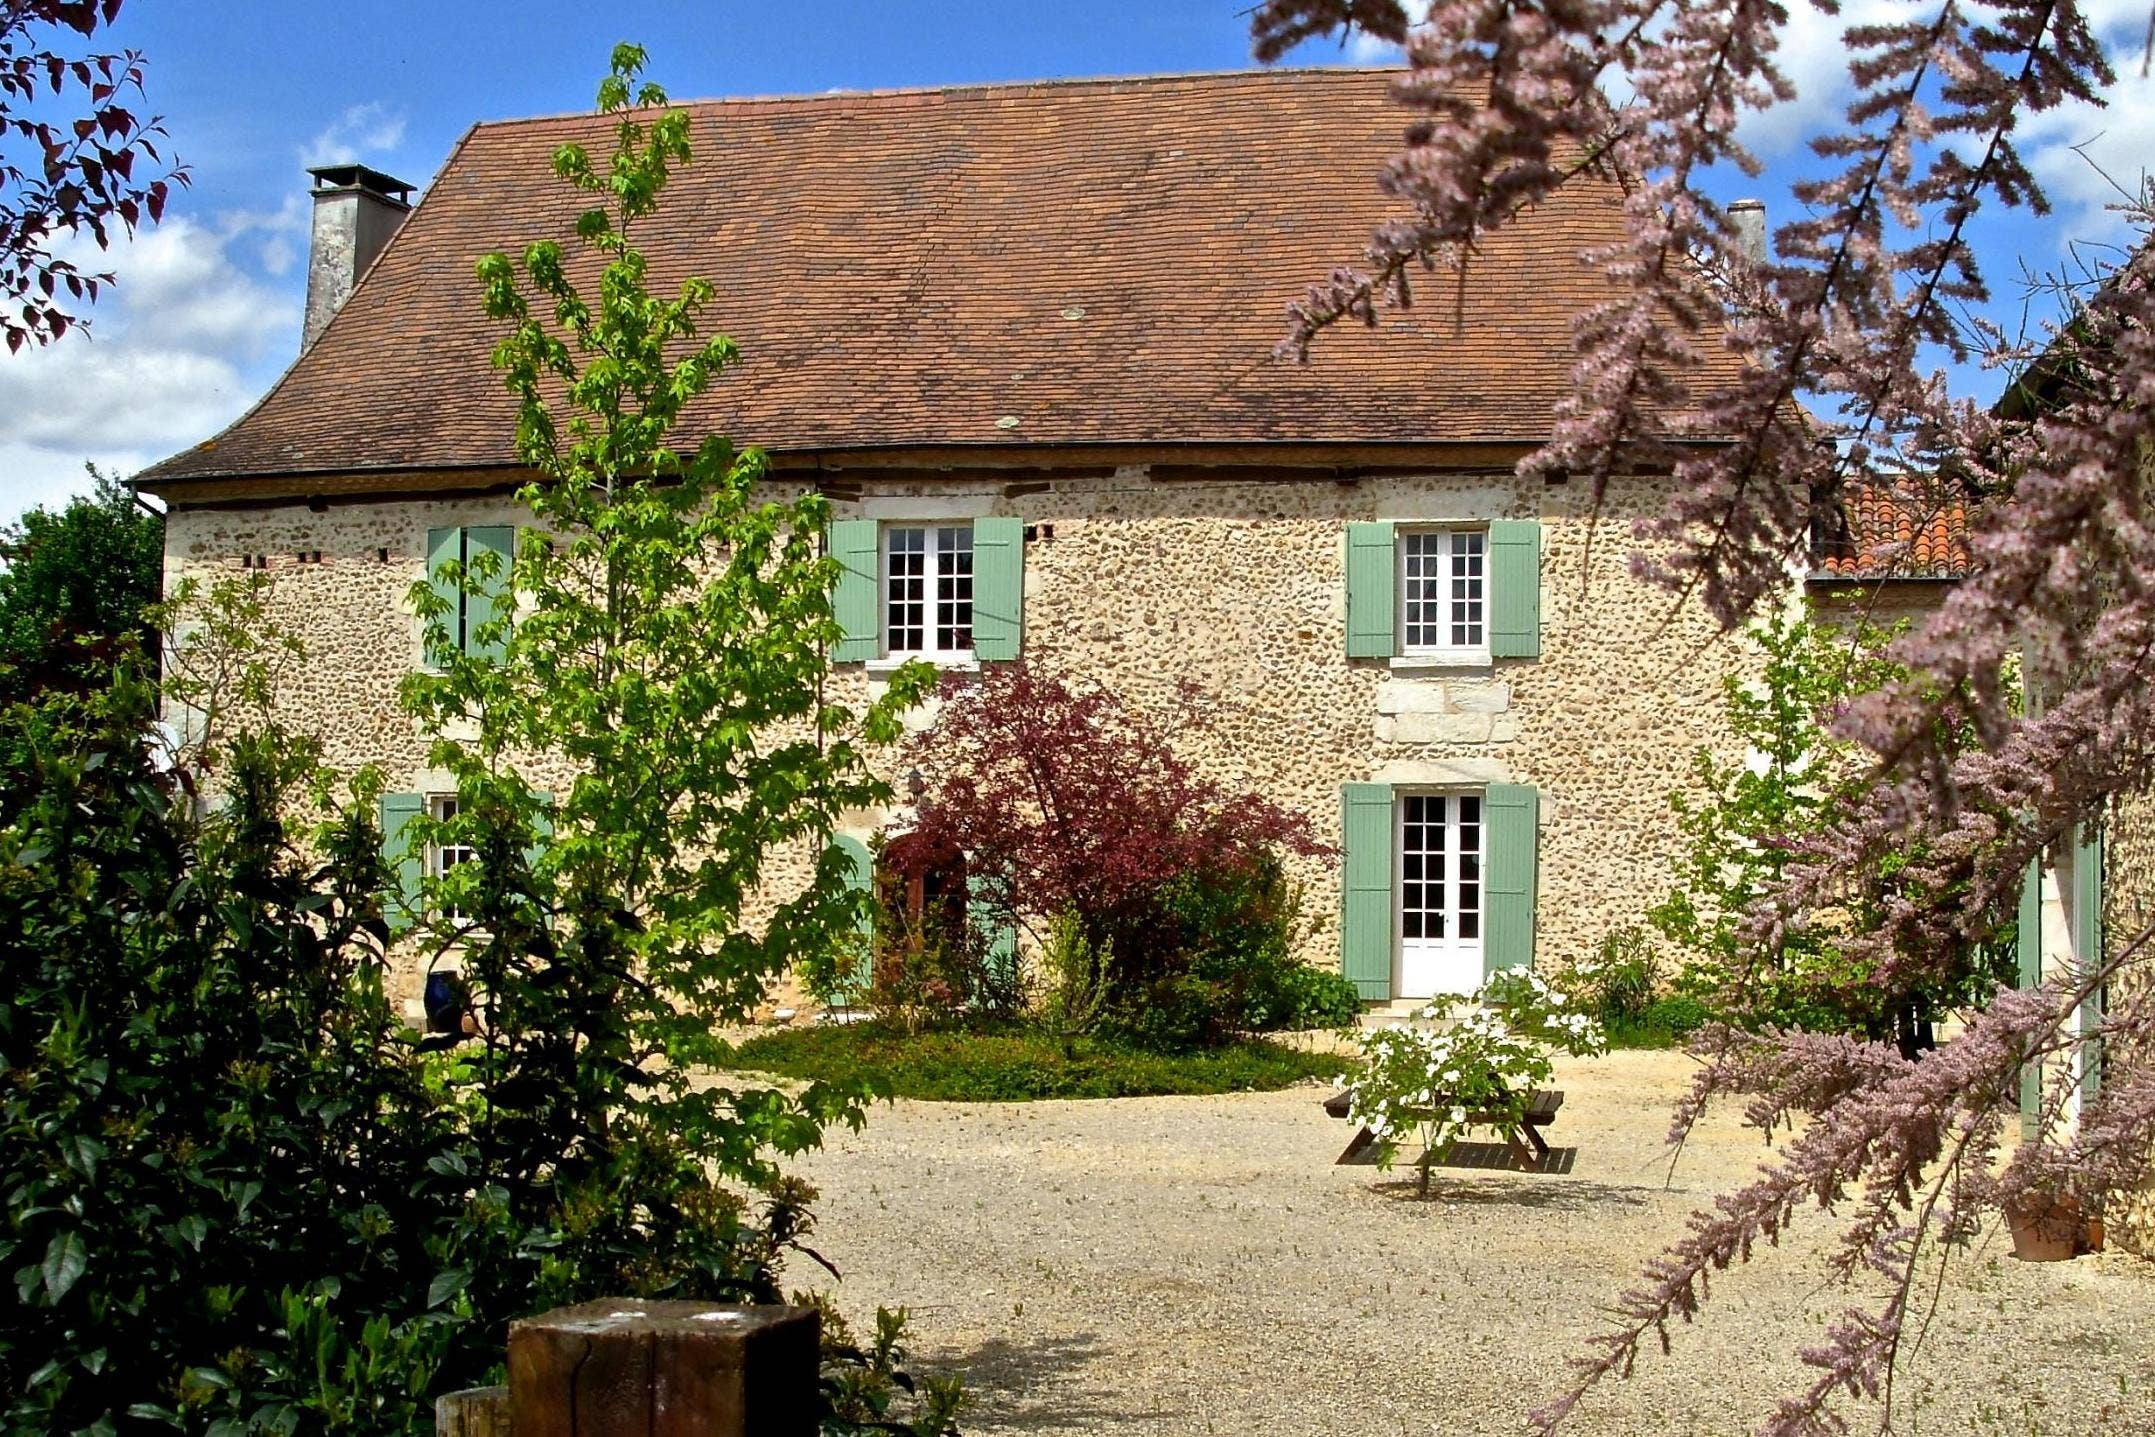 Buying a home in France: here's what you need to know about home-buying in France this year